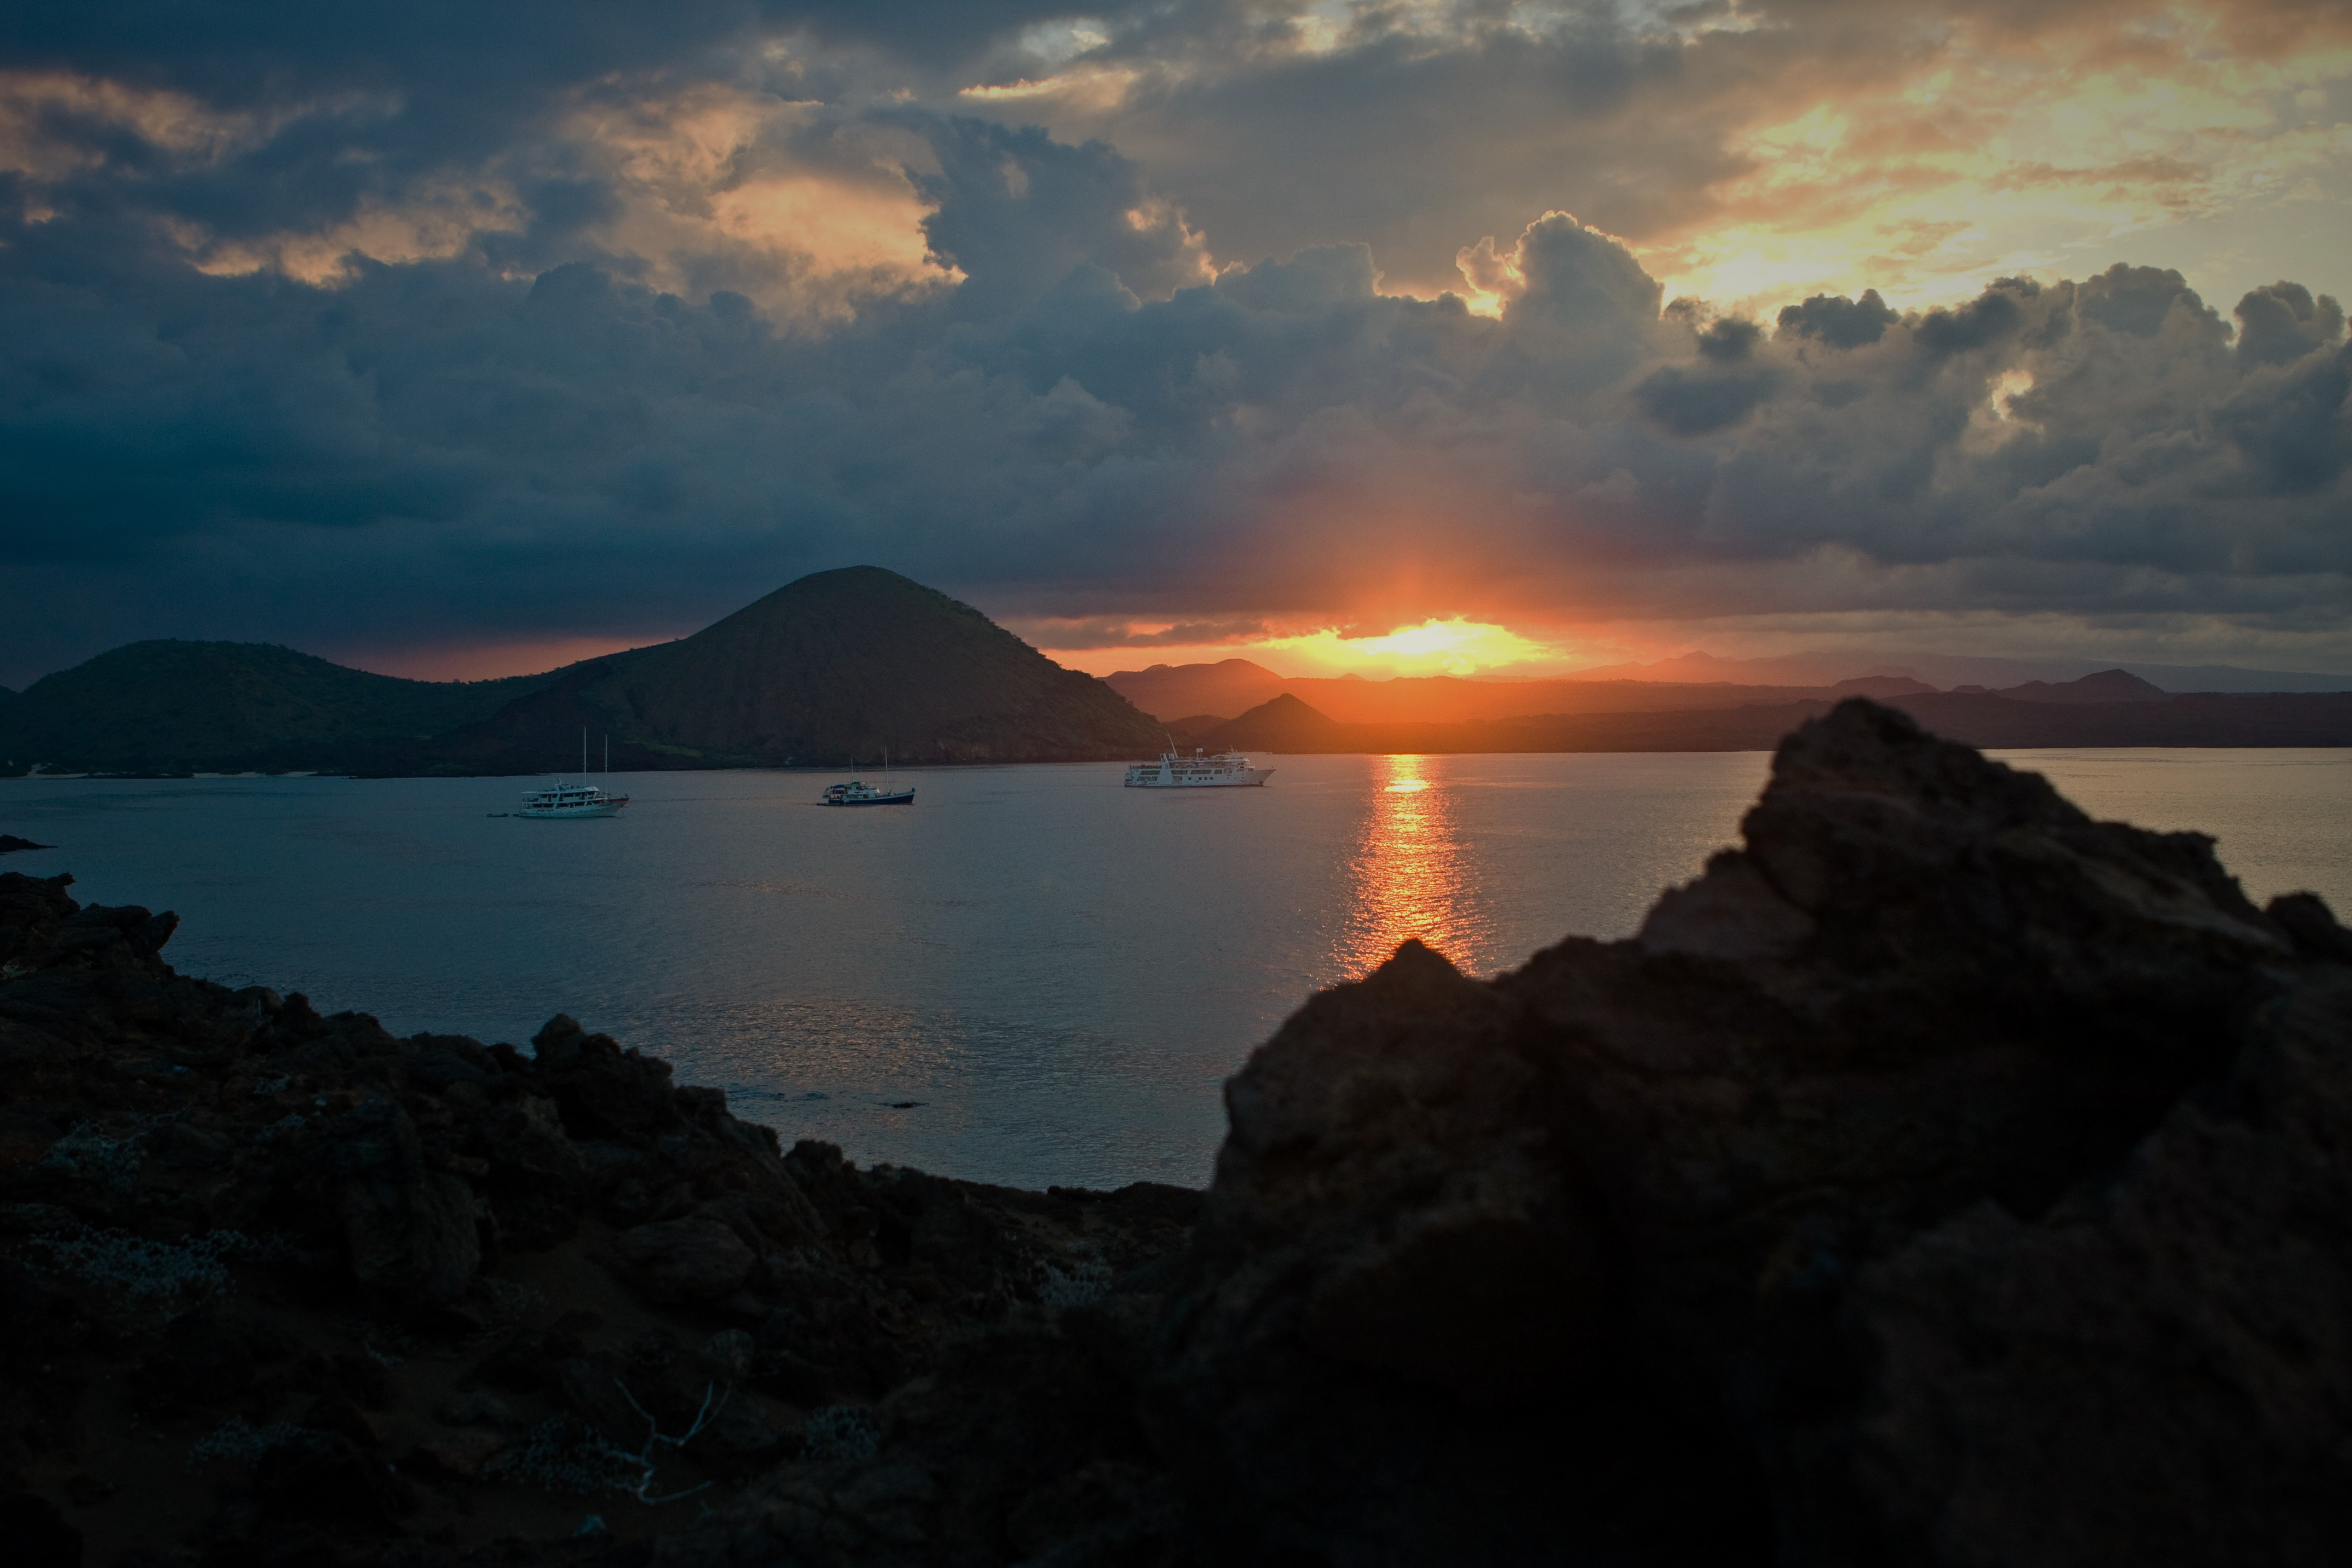 Sunset-Galapagos.jpg